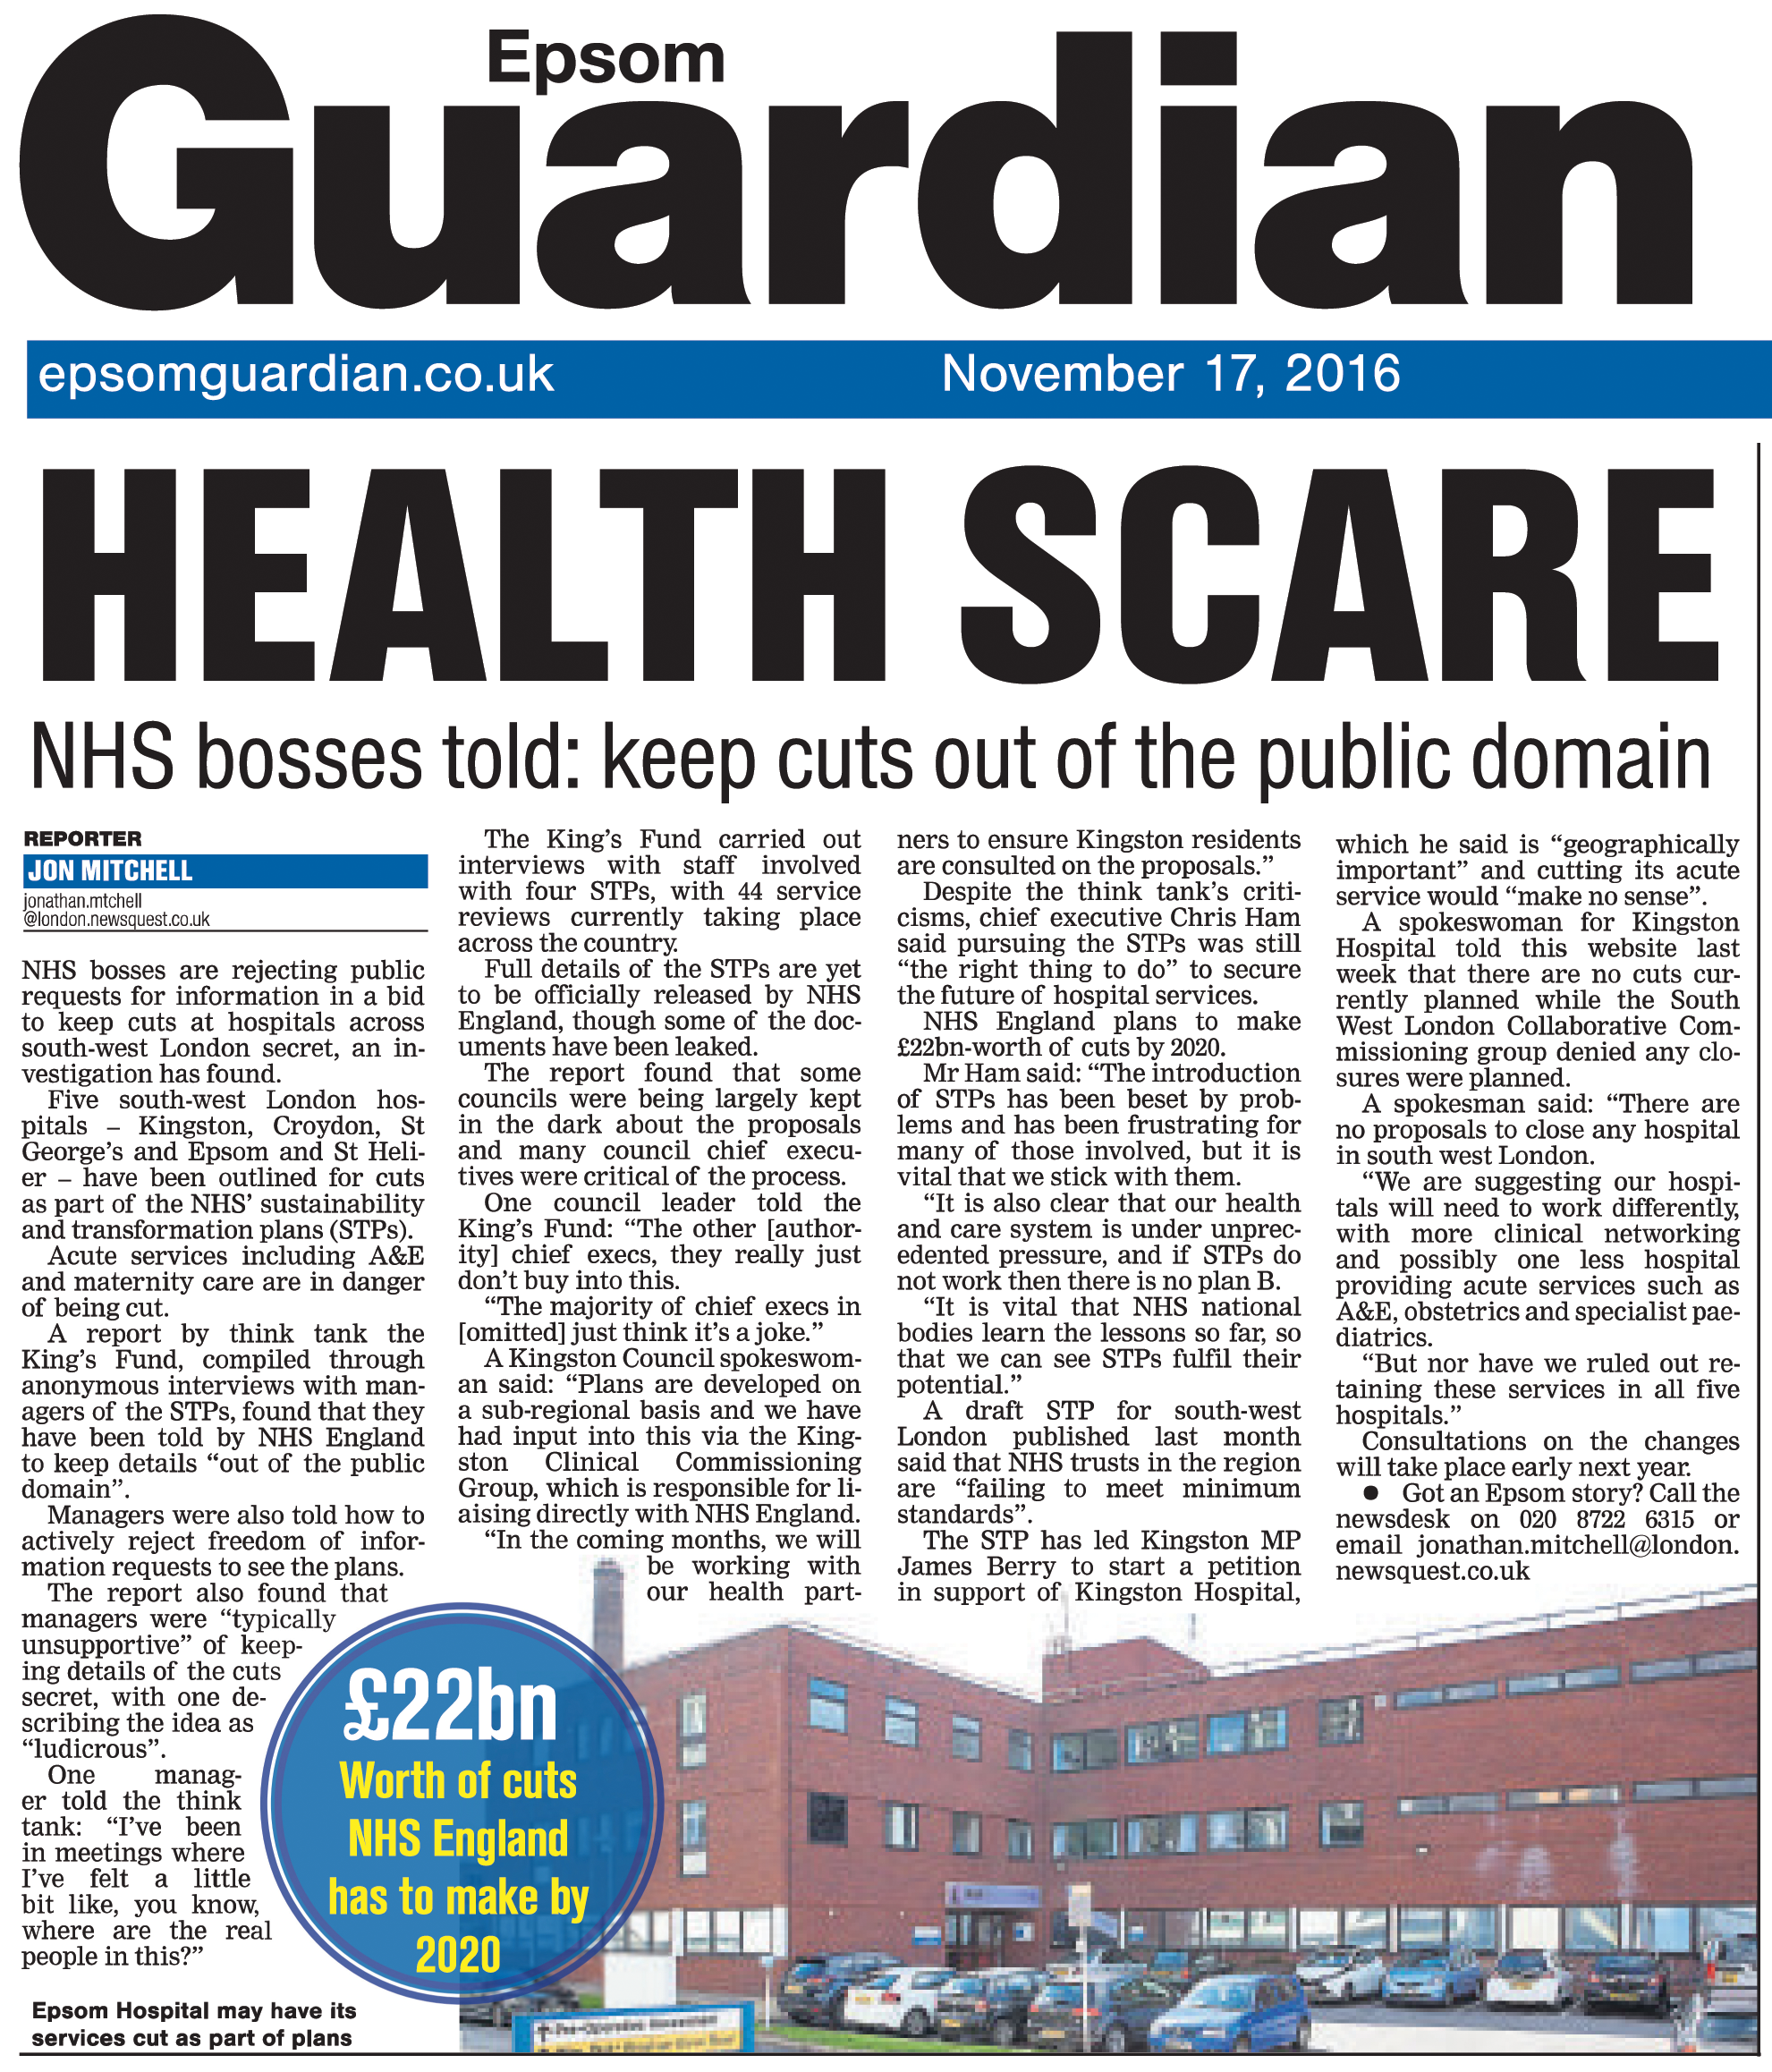 2016-11-17-epsom-guardian-front-page-nhs-bosses-told-to-keep-cuts-out-of-public-domain